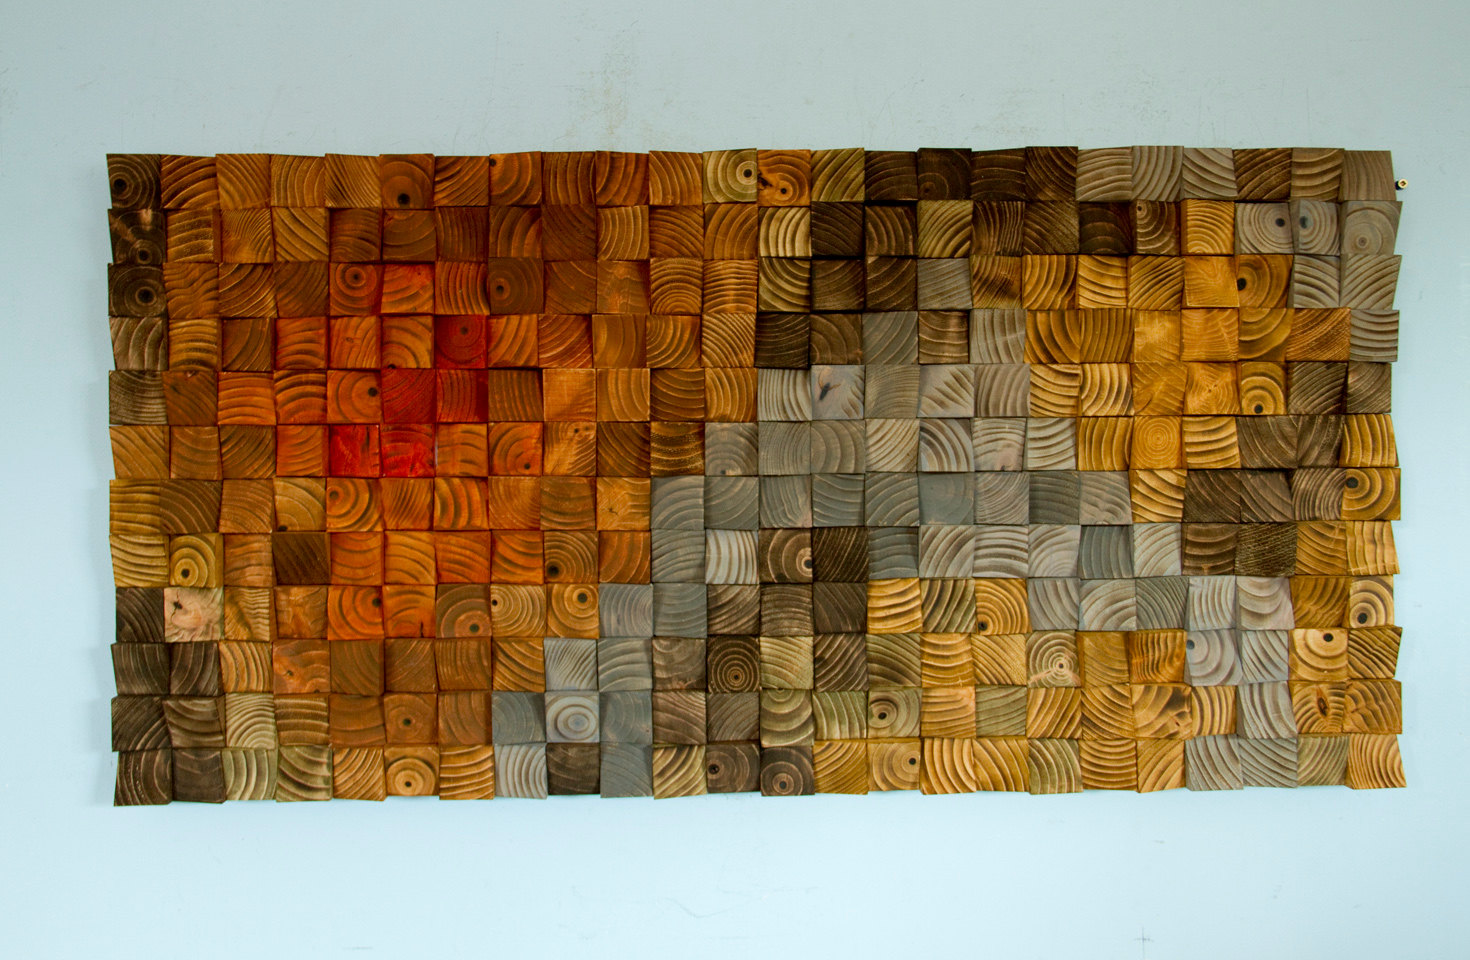 ... Rustic Wood Wall Art, Wood Wall Sculpture, Abstract Wood Art ...